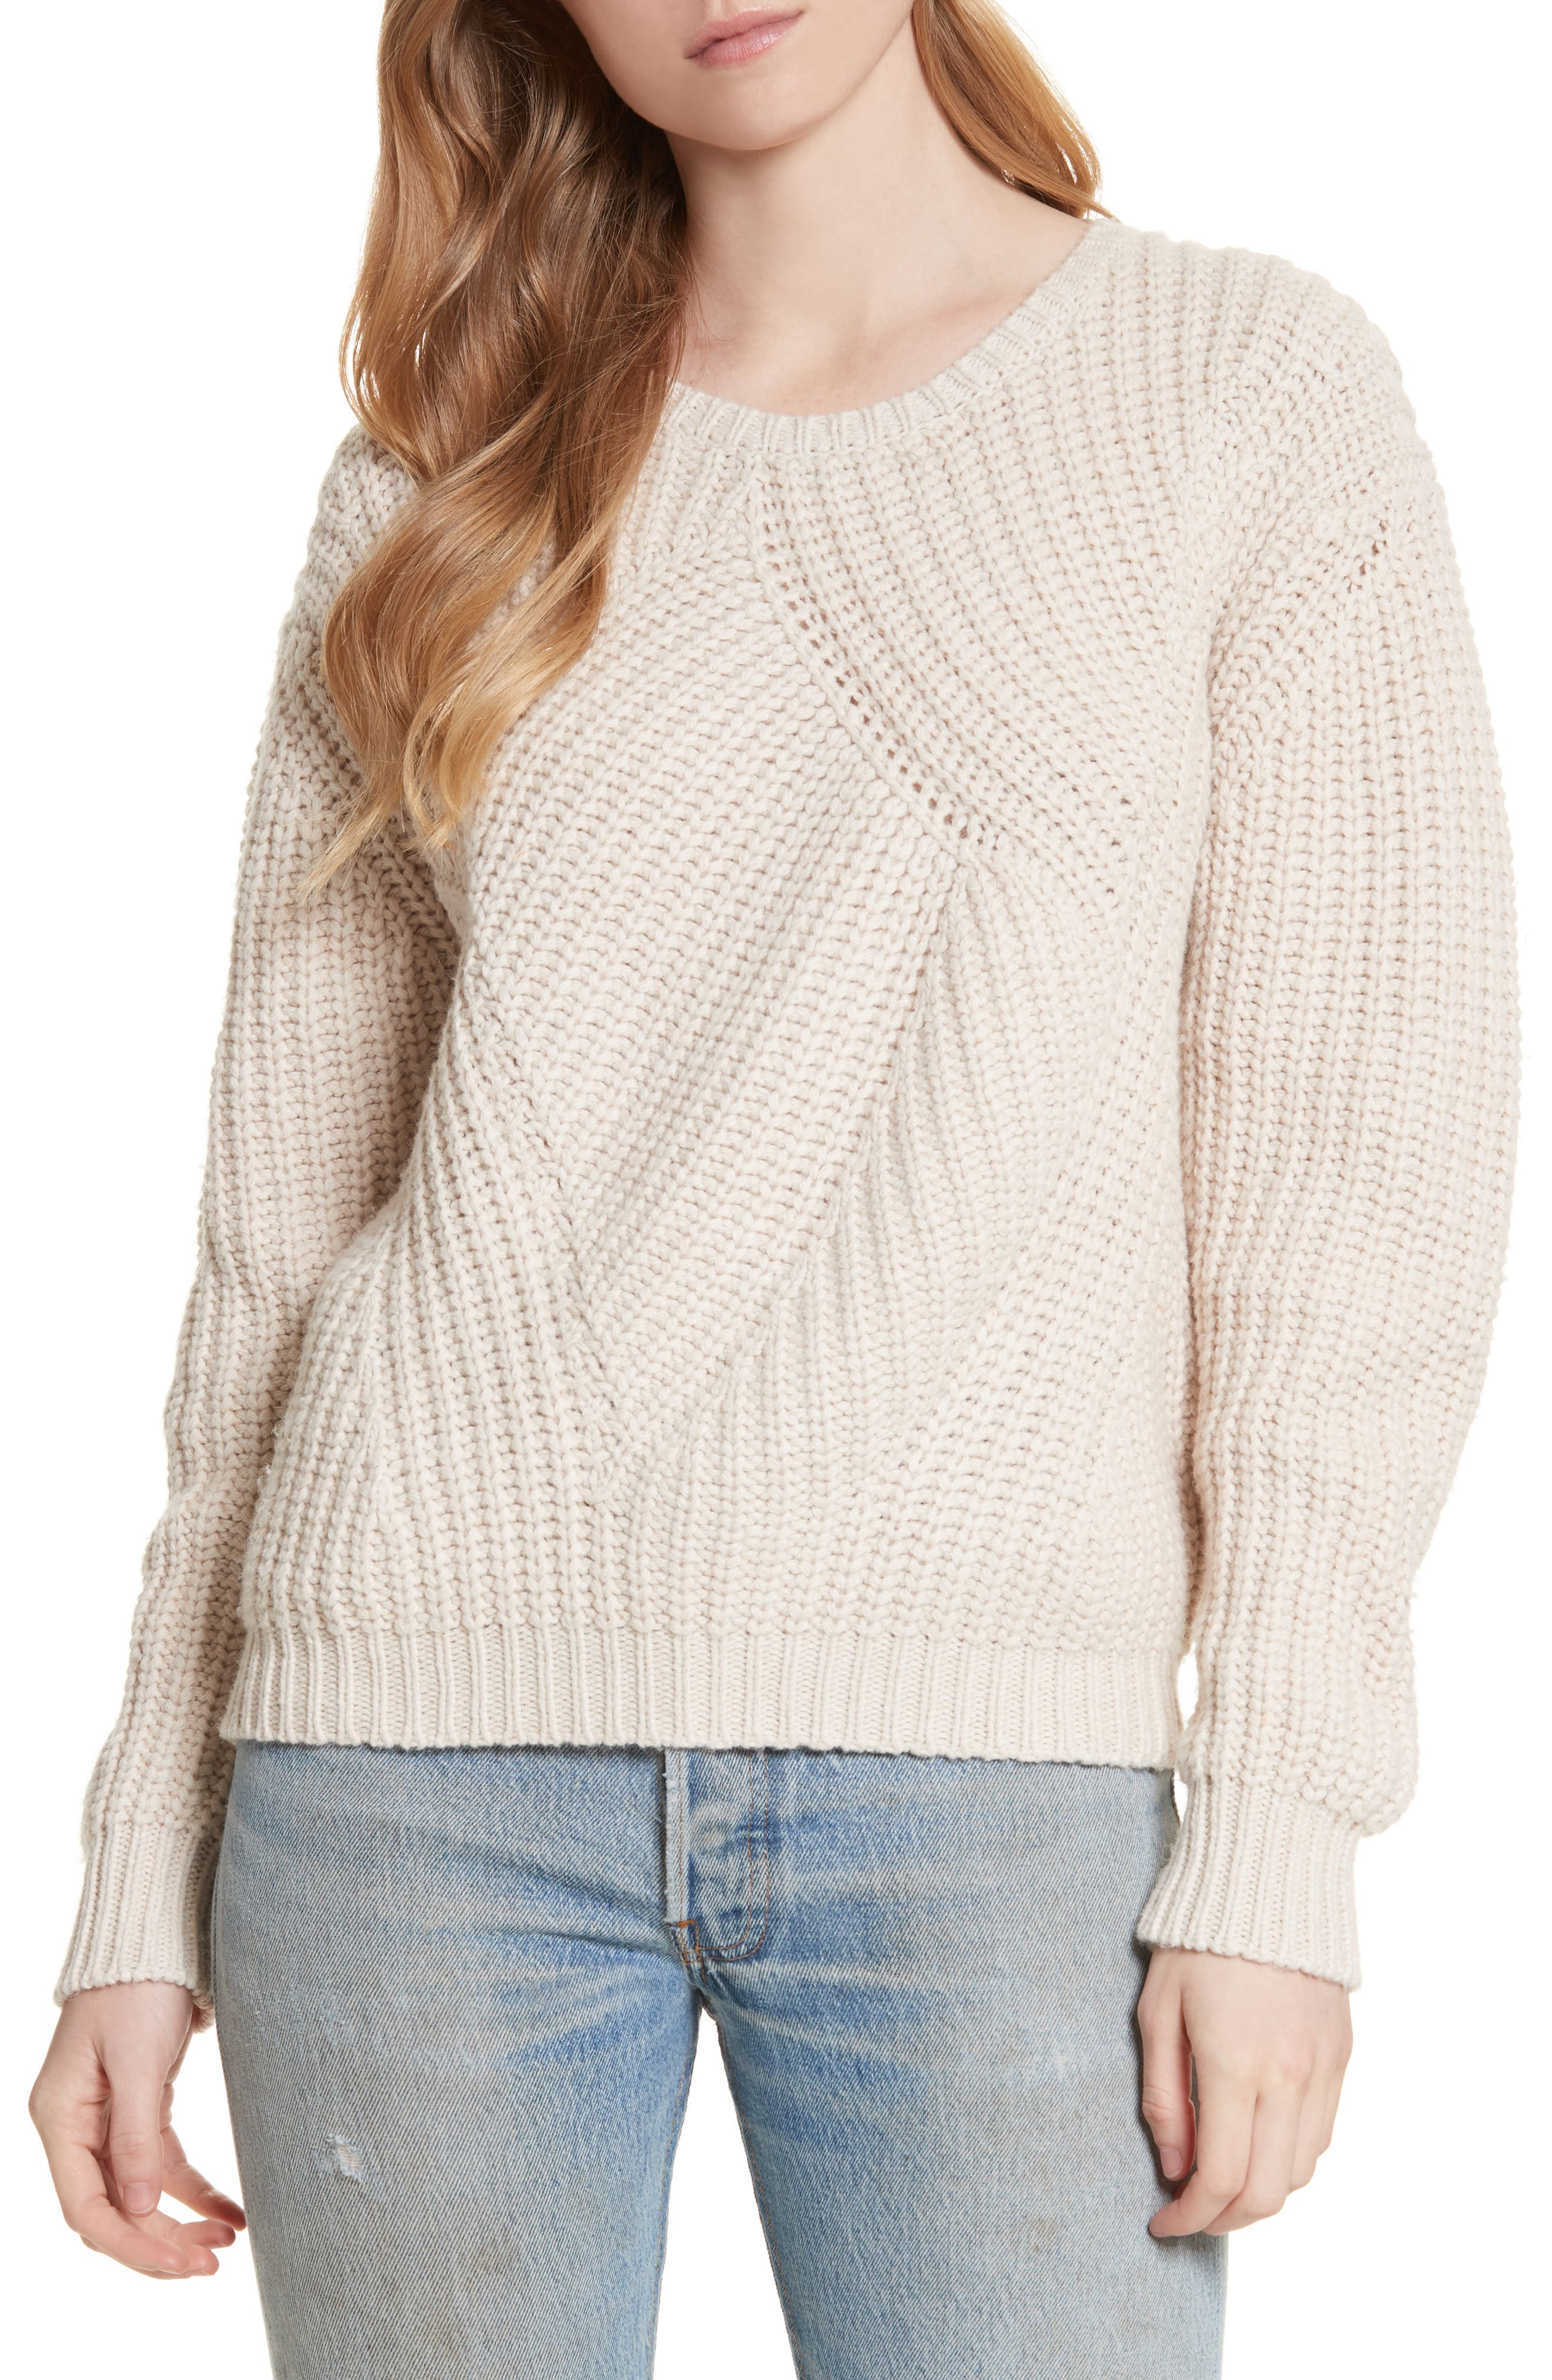 Balenne Sweater,                         Main,                         color, 277